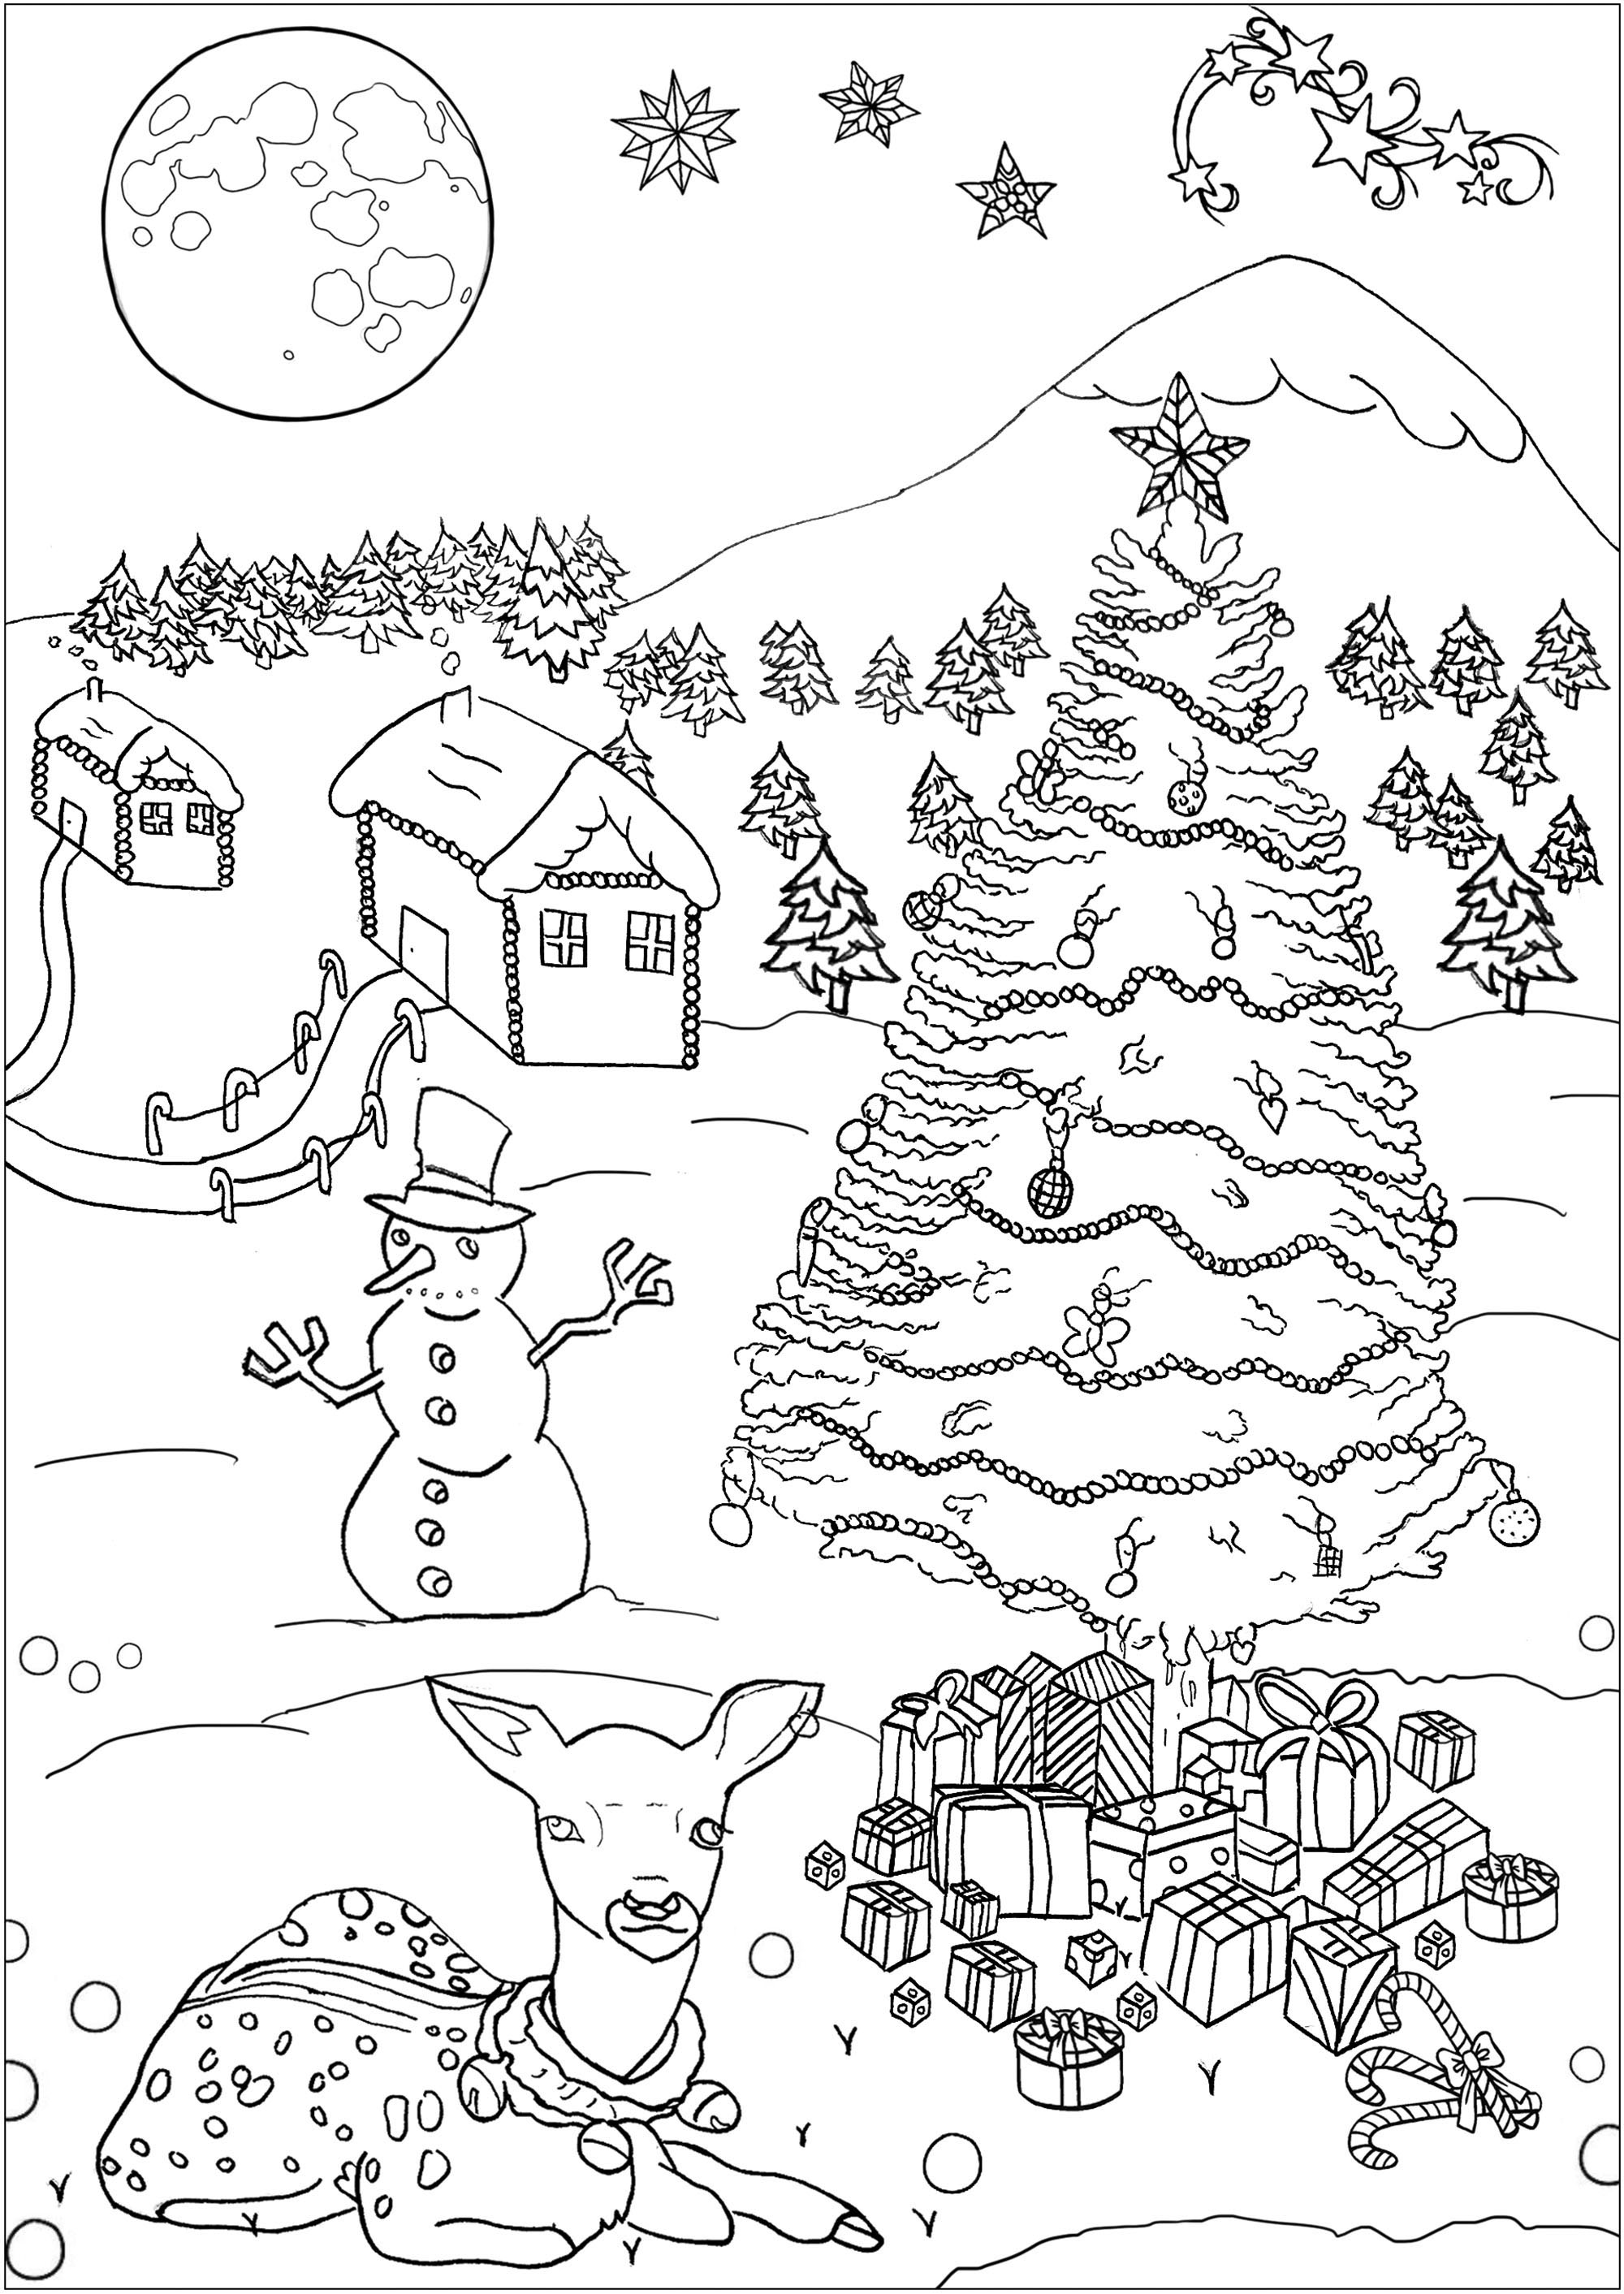 Christmas Free To Color For Children Christmas Kids Coloring Pages